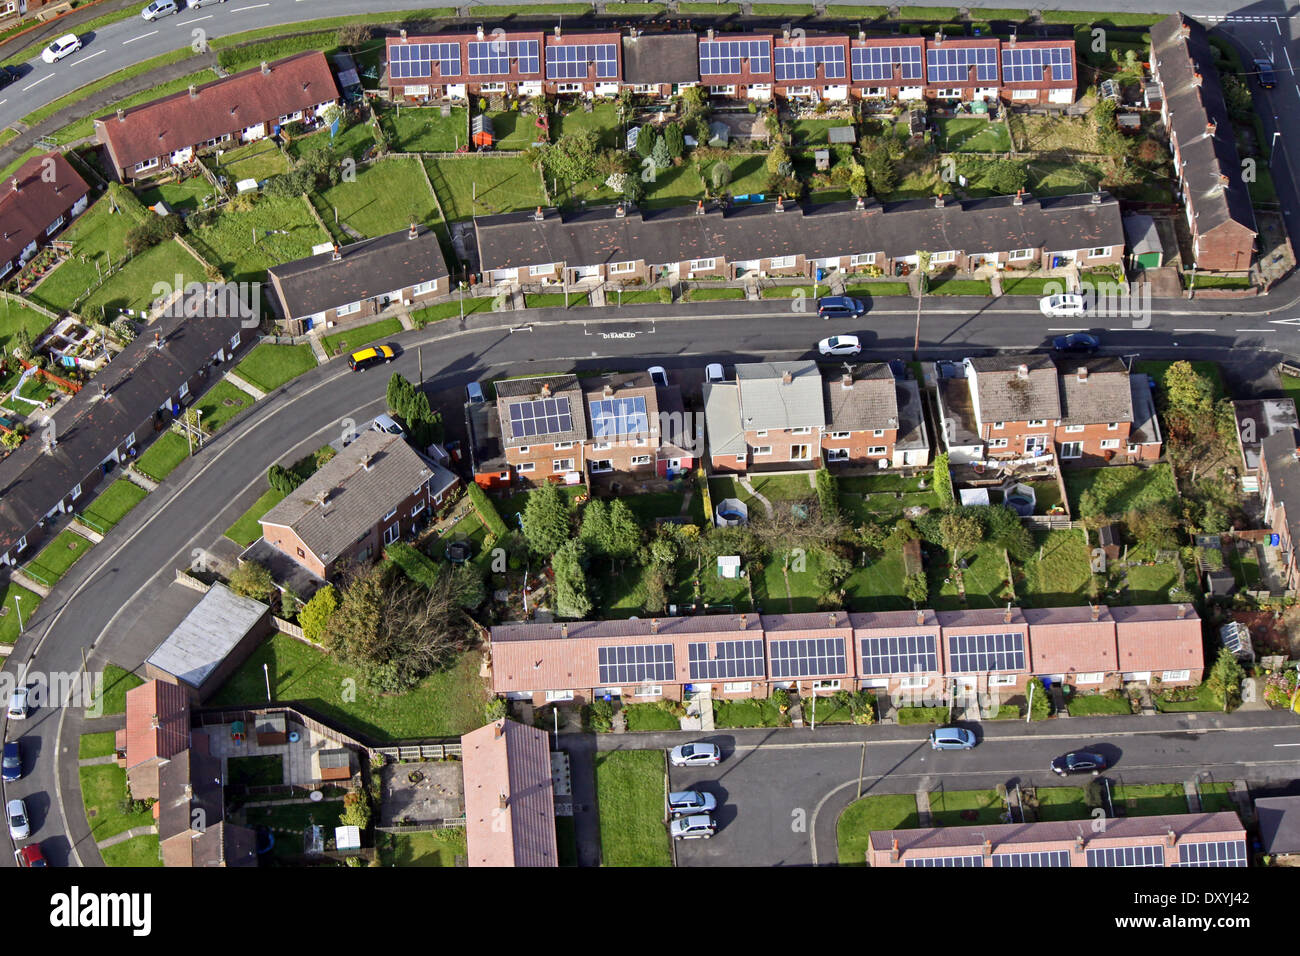 aerial view of modern and older houses and bungalows with solar panels on the roof - Stock Image